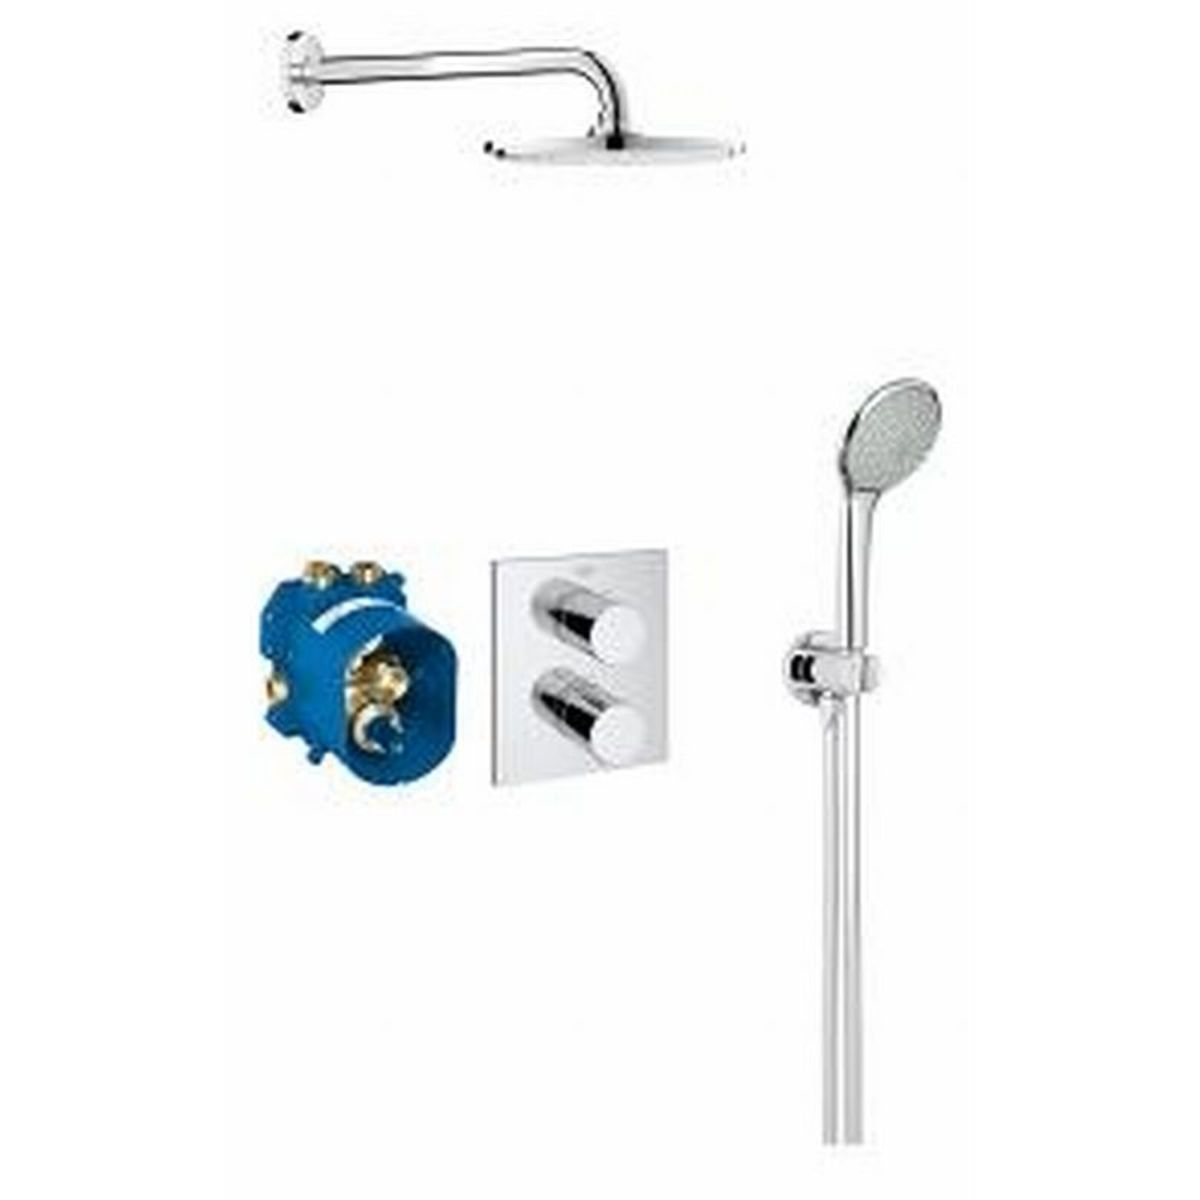 Grohe grohtherm 3000 cosmopolitan perfect shower set for Grohe cosmopolitan 1000 thermostat